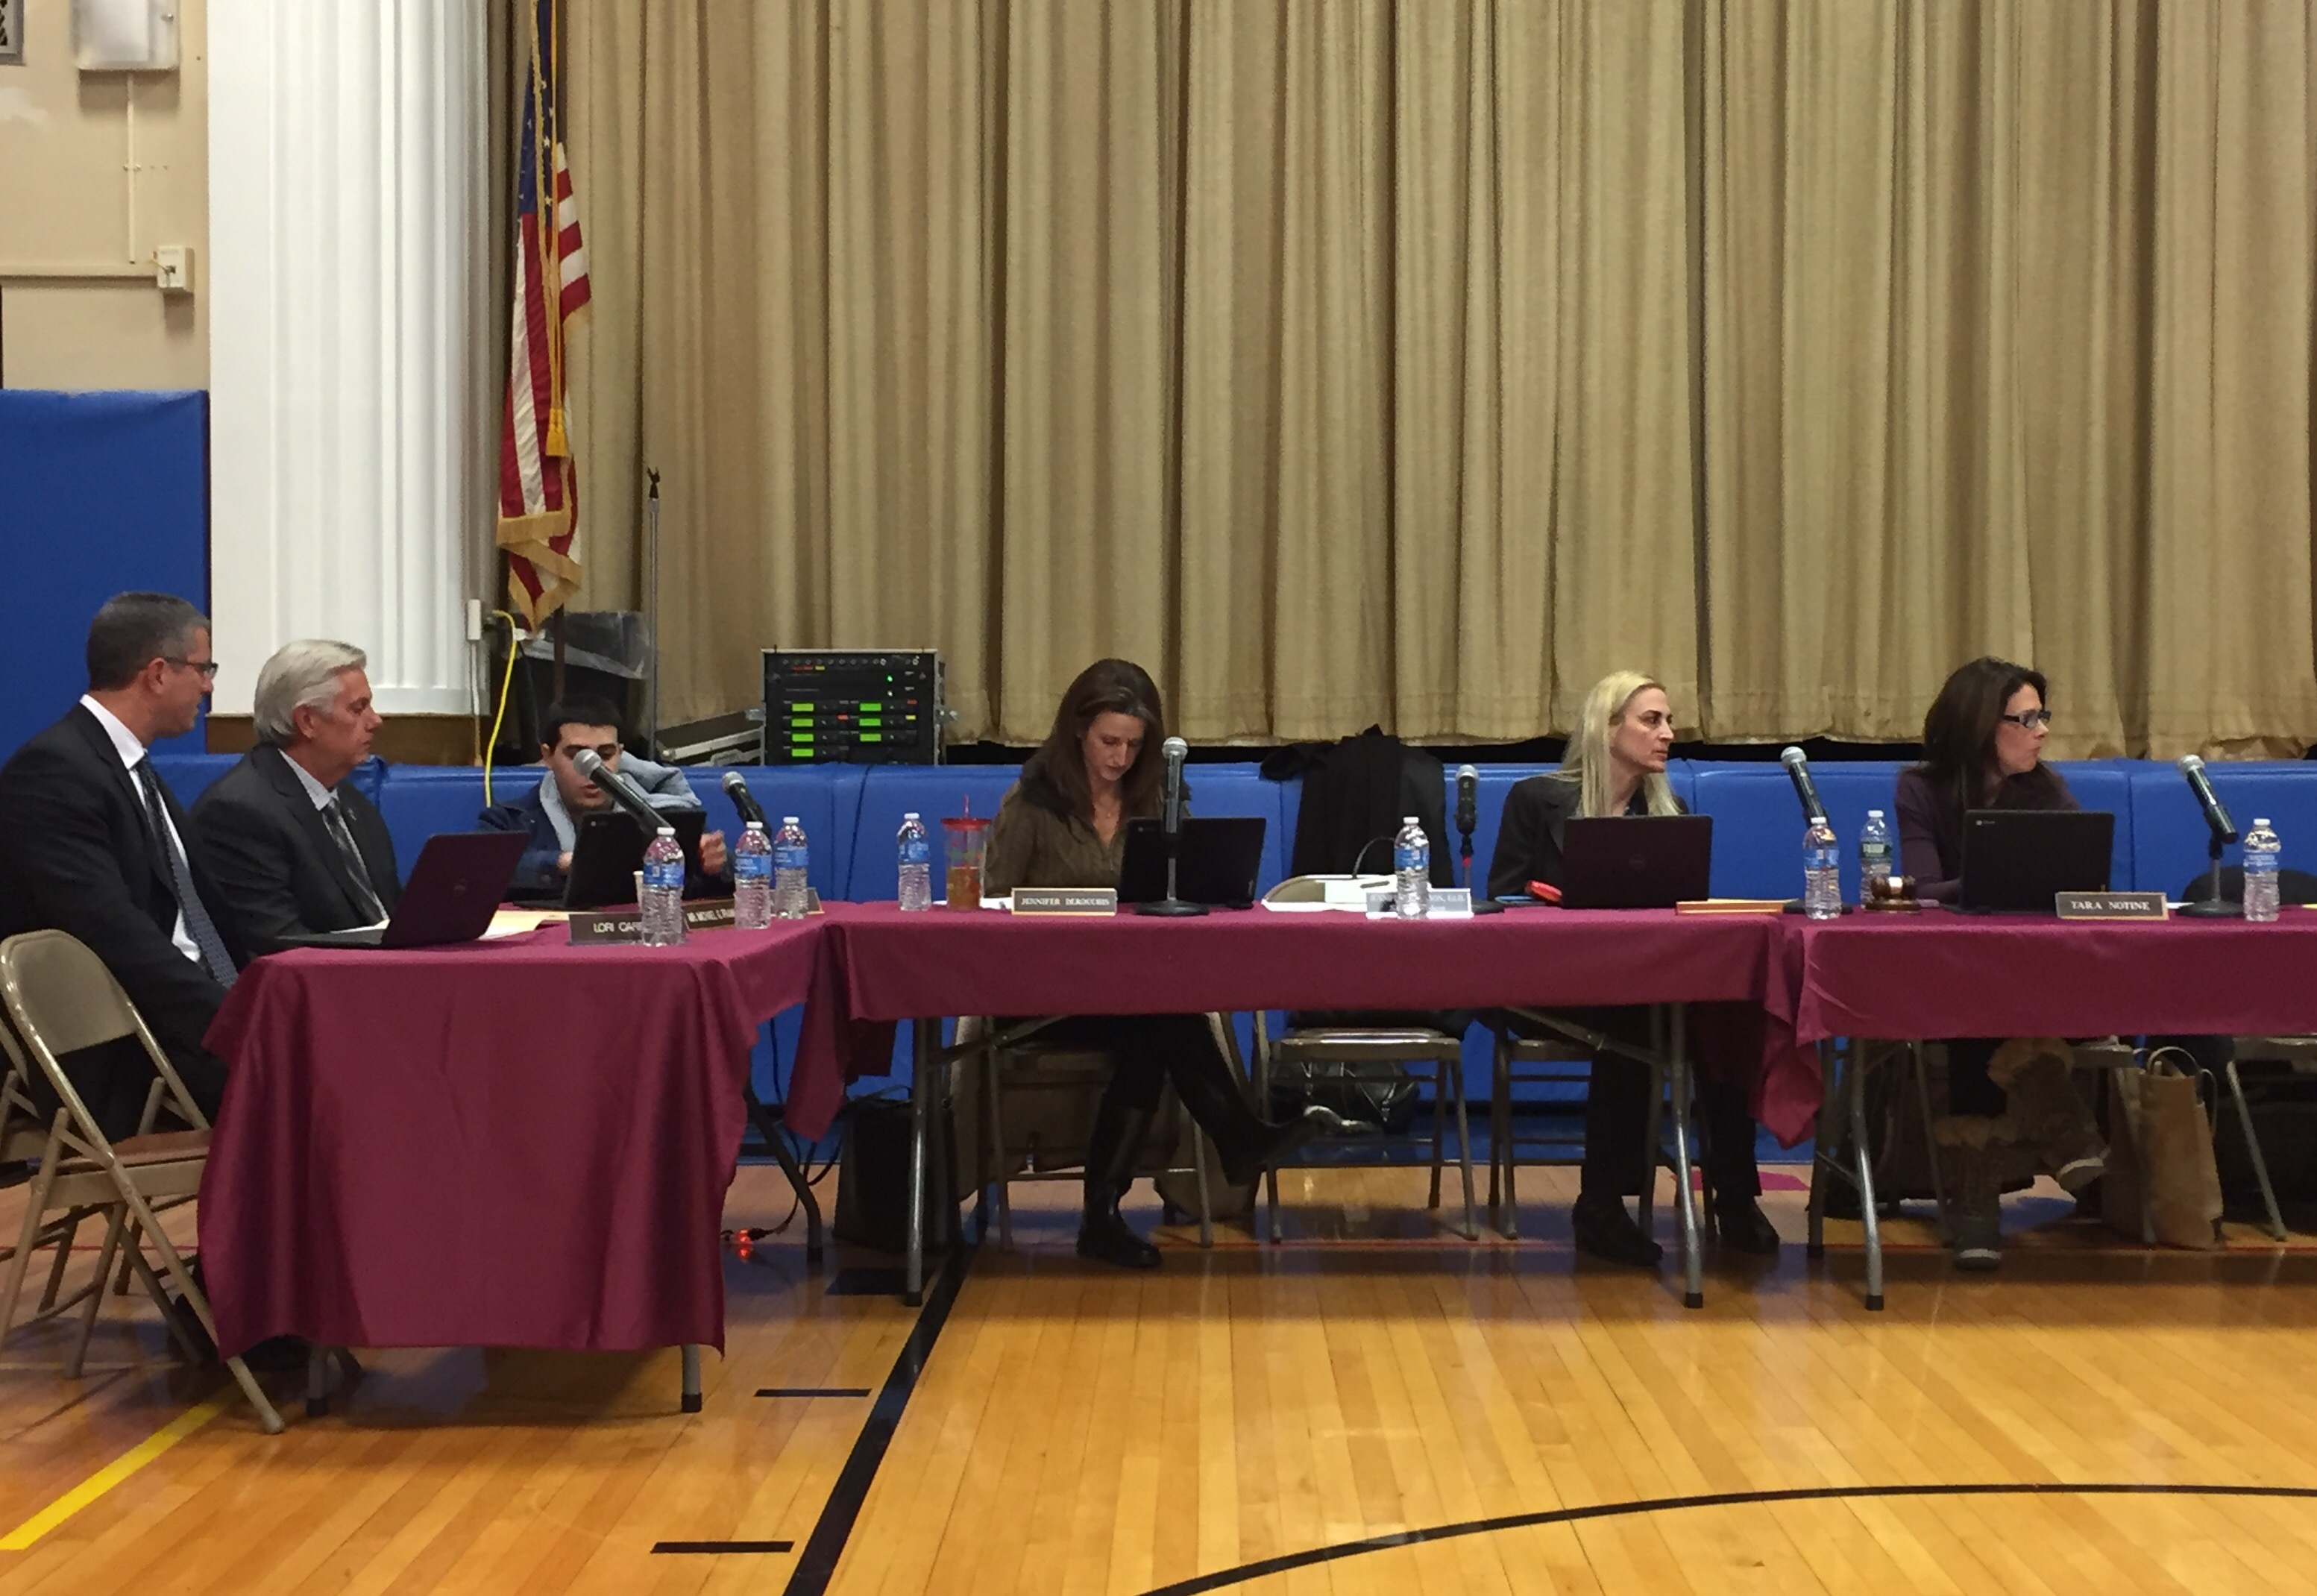 Nhp Gcp Seeks To Alleviate Substitute Teacher Shortage New Hyde Park Herald Courier The